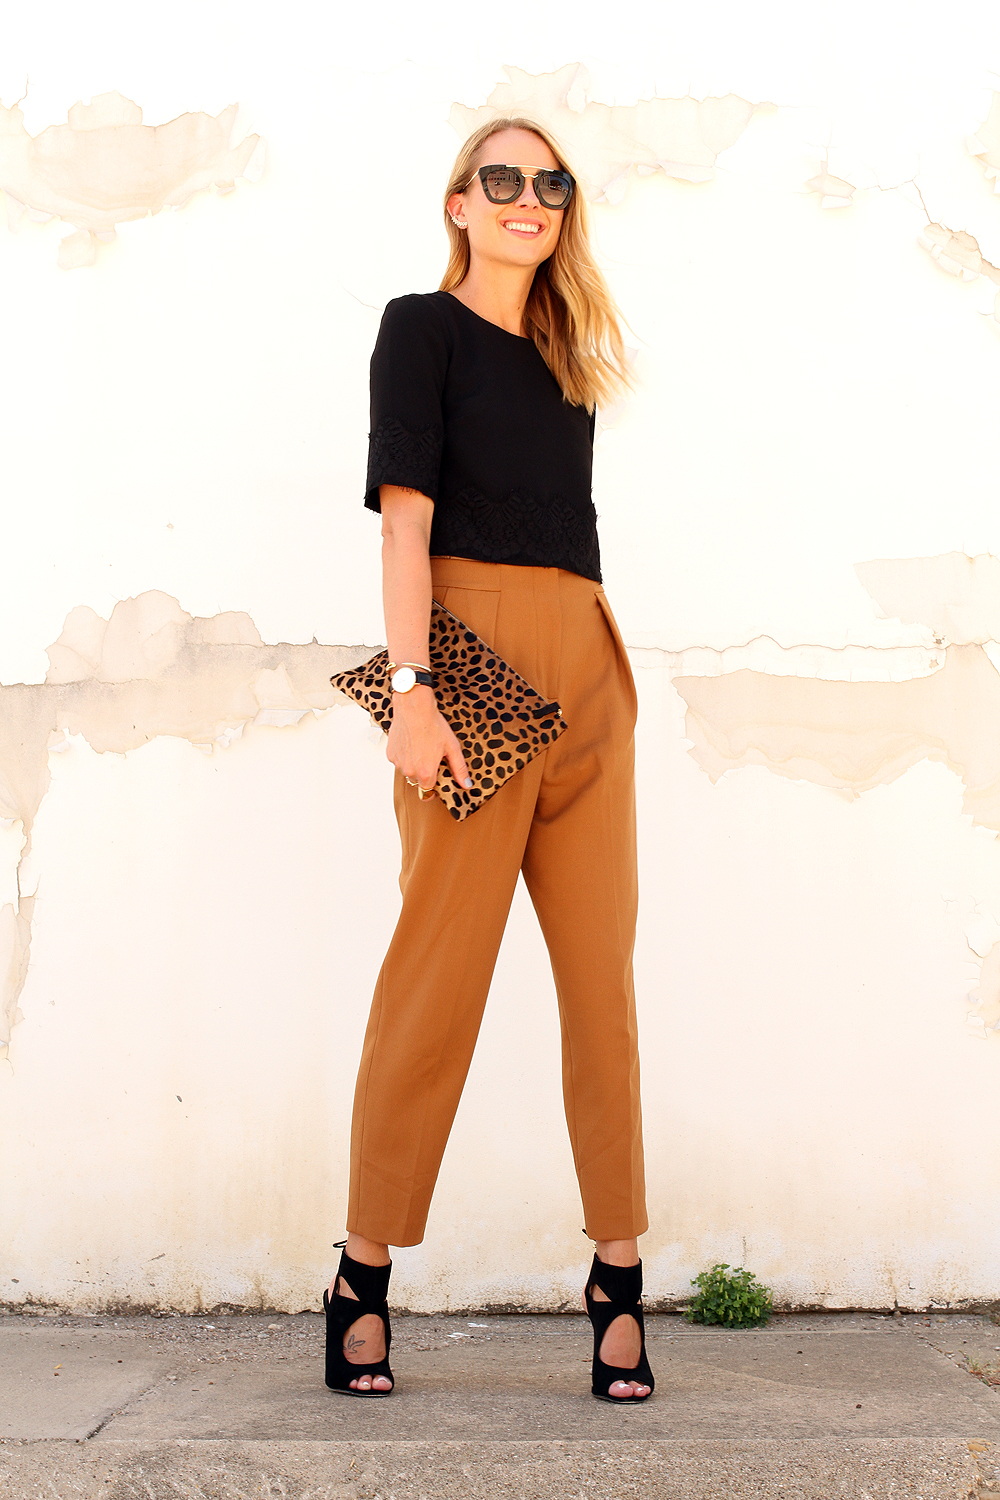 fashion-jackson-french-connection-trousers-french-connection-lace-crop-top-aquazzura-sexy-thing-similar-heels-prada-sunglasses-clare-v-leopard-clutch